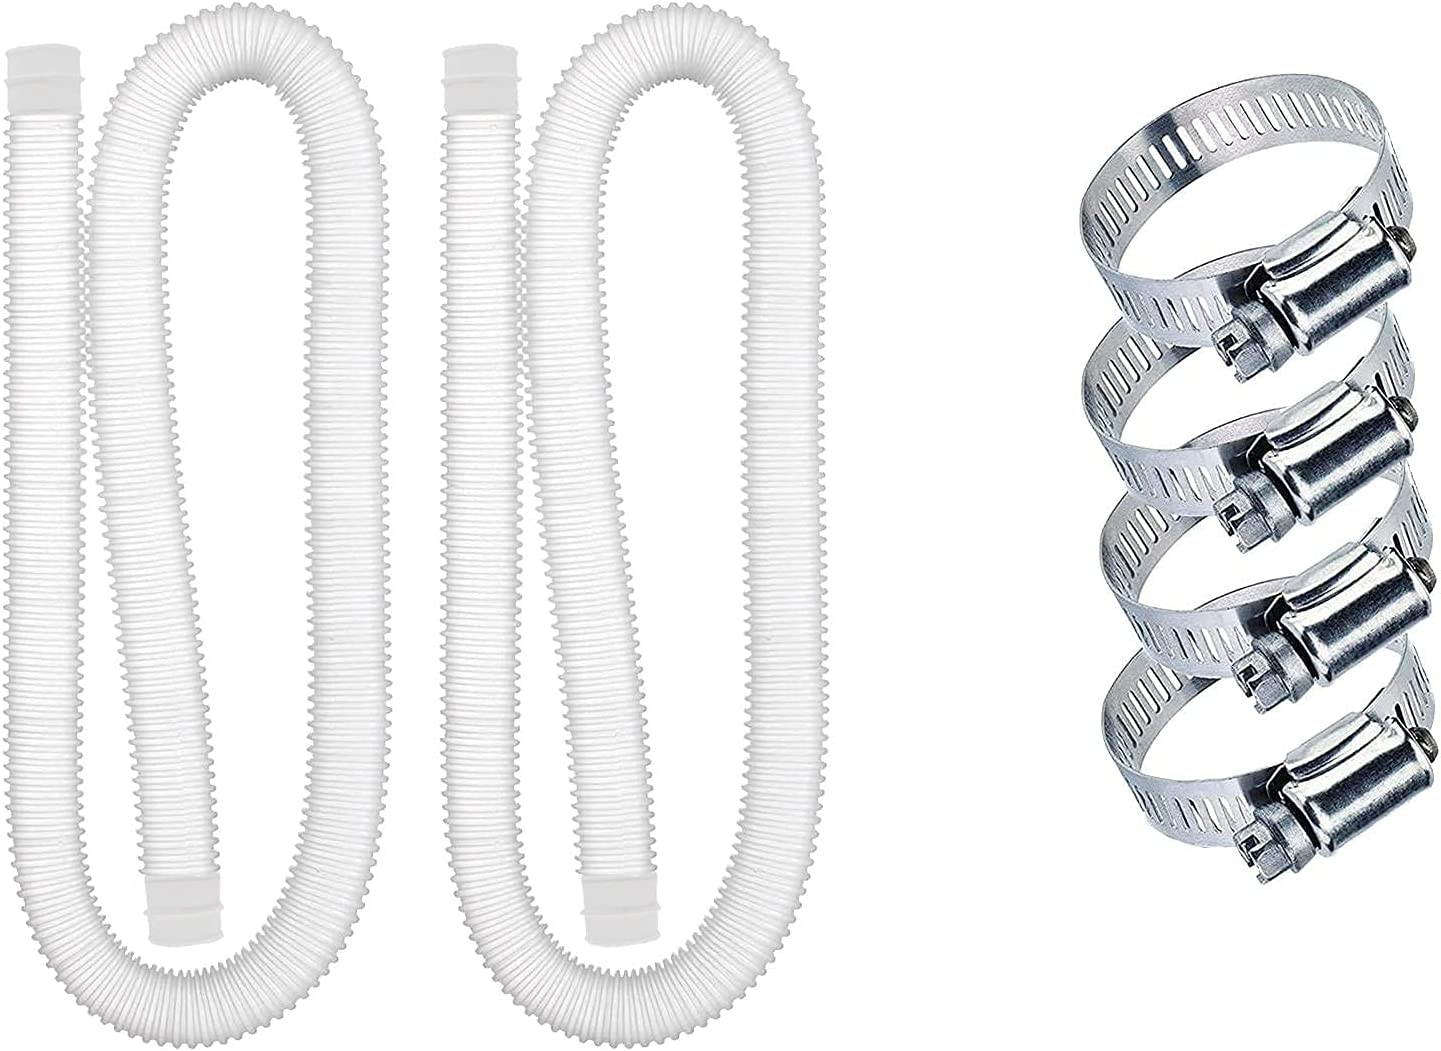 Swimming Pool Replacement Hose,1.25Inches Diameter Replacement Hose,Easy to Install,Pool Filter Replacement Hose Compatible with filter Pump 330 GPH, 530 GPH,1000 GPH(2PCS)